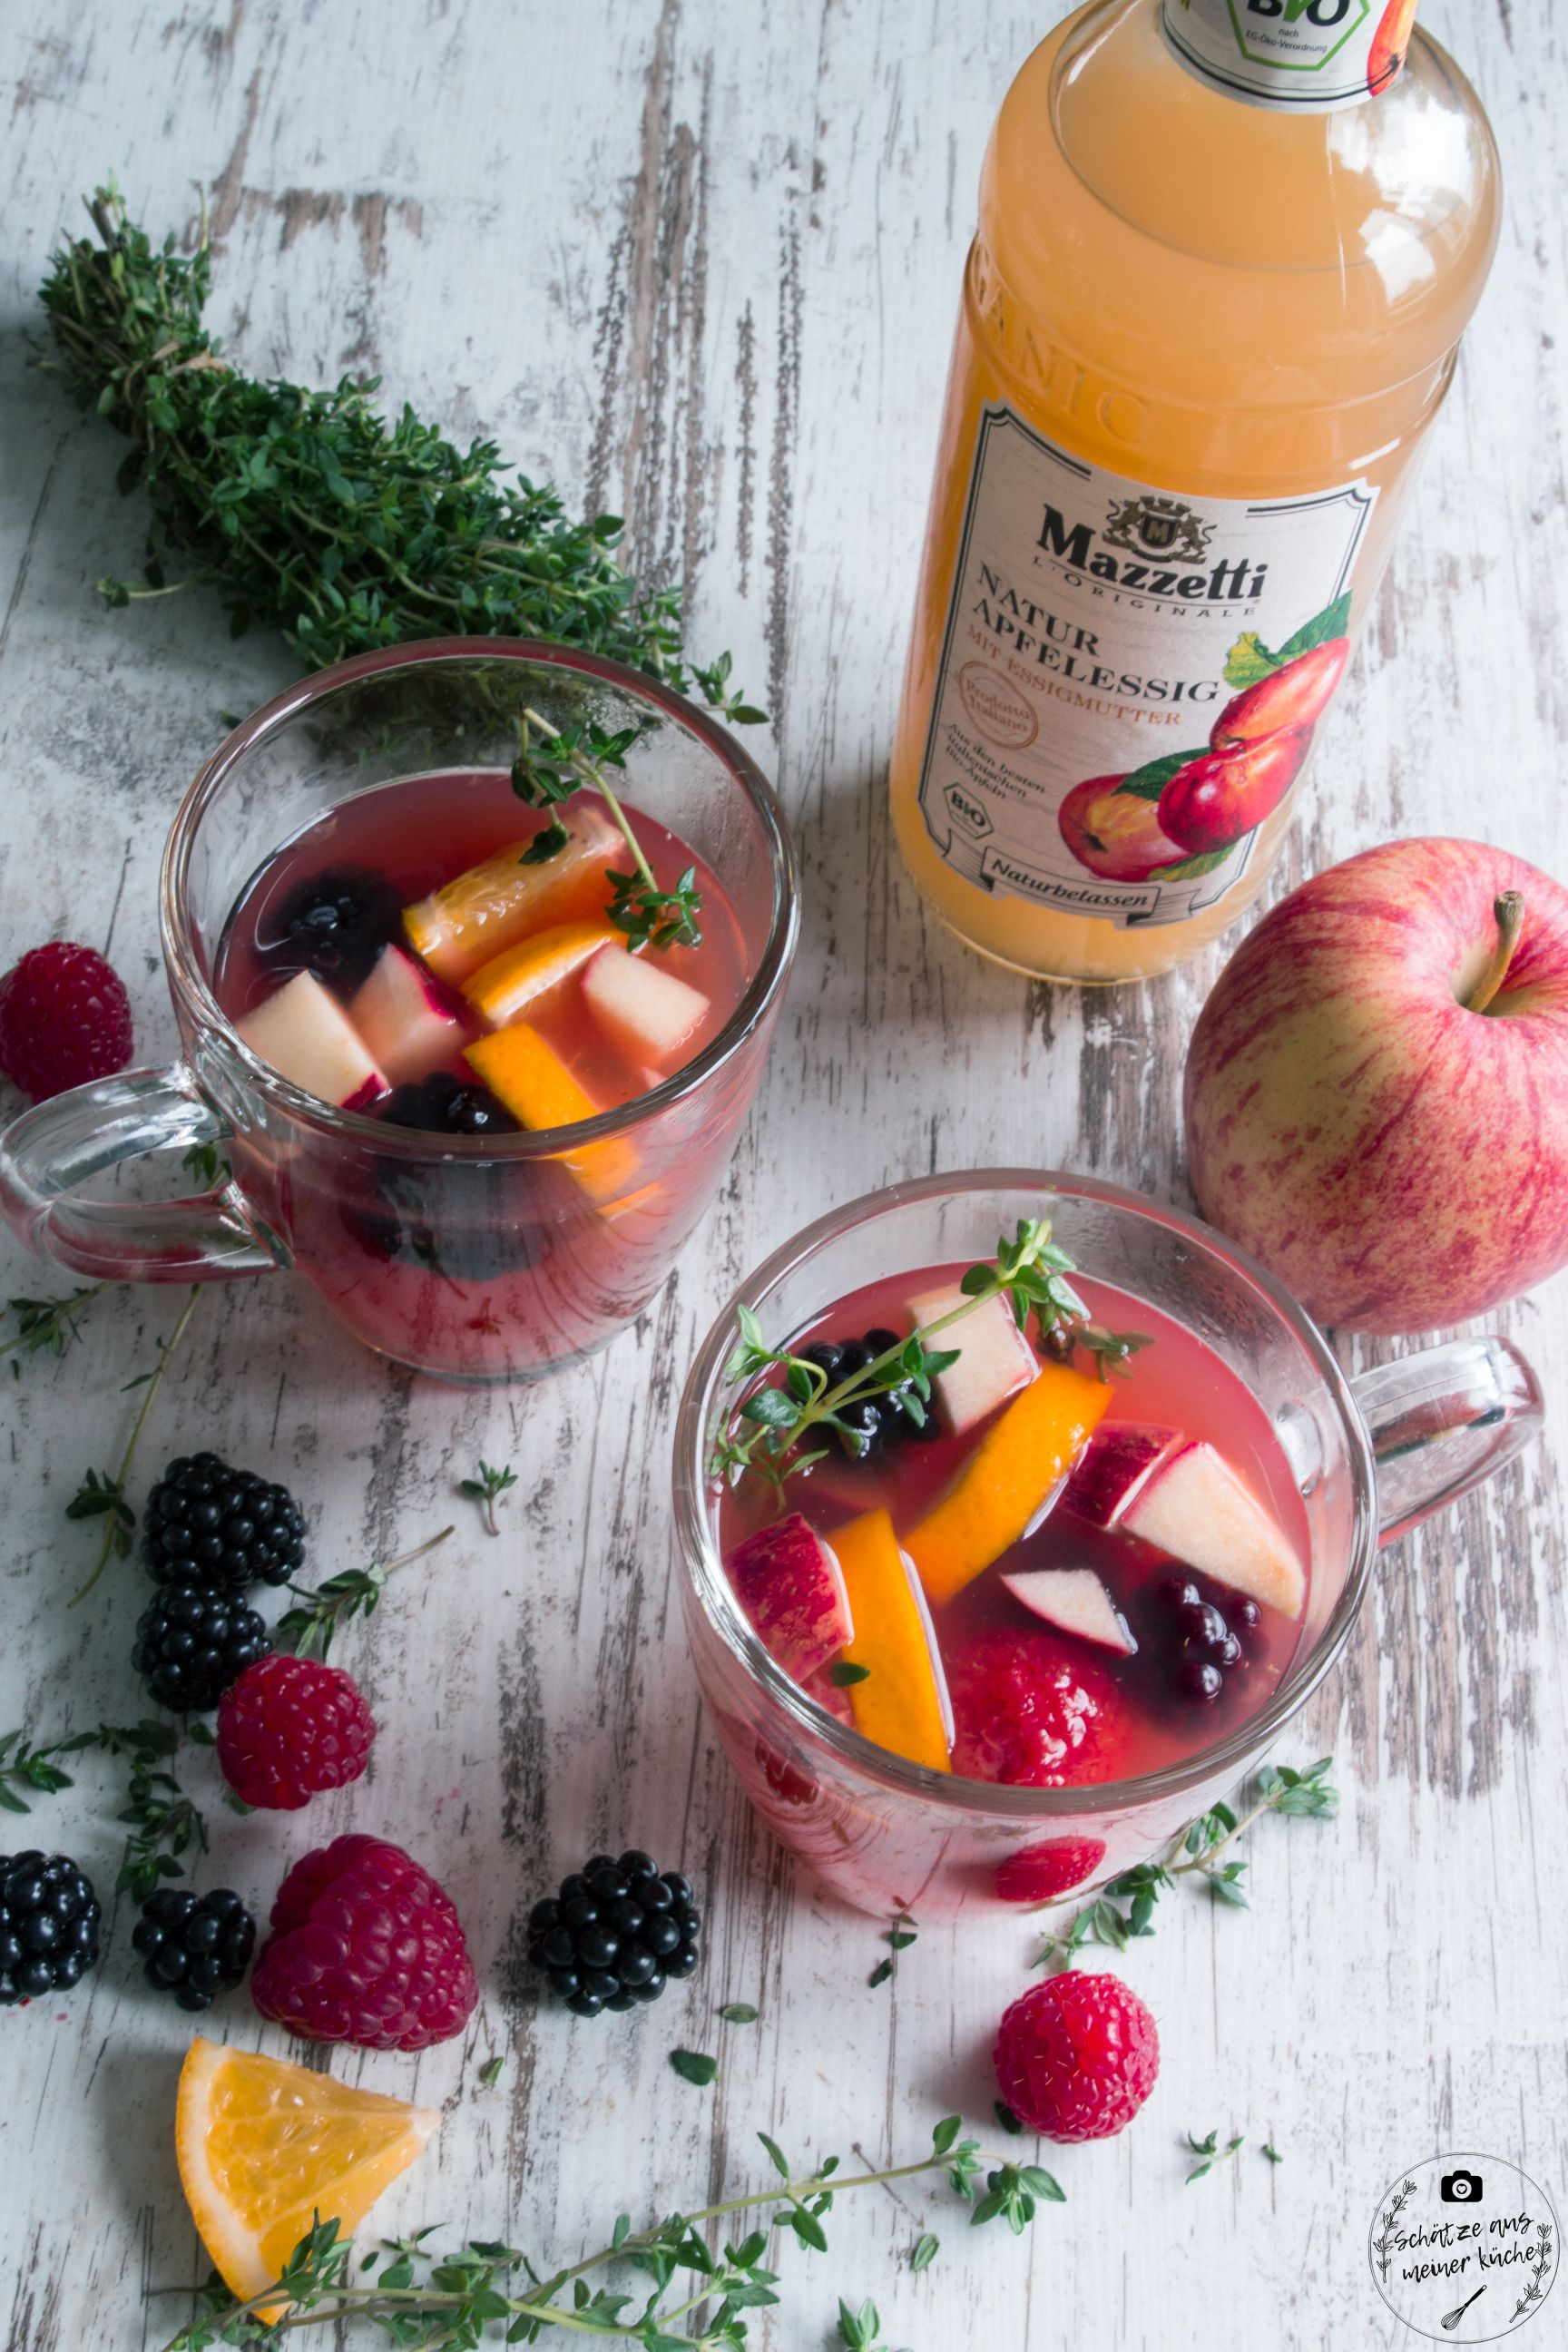 Berry-Apple-Punch mit Apfelessig Mazzetti l'Originale